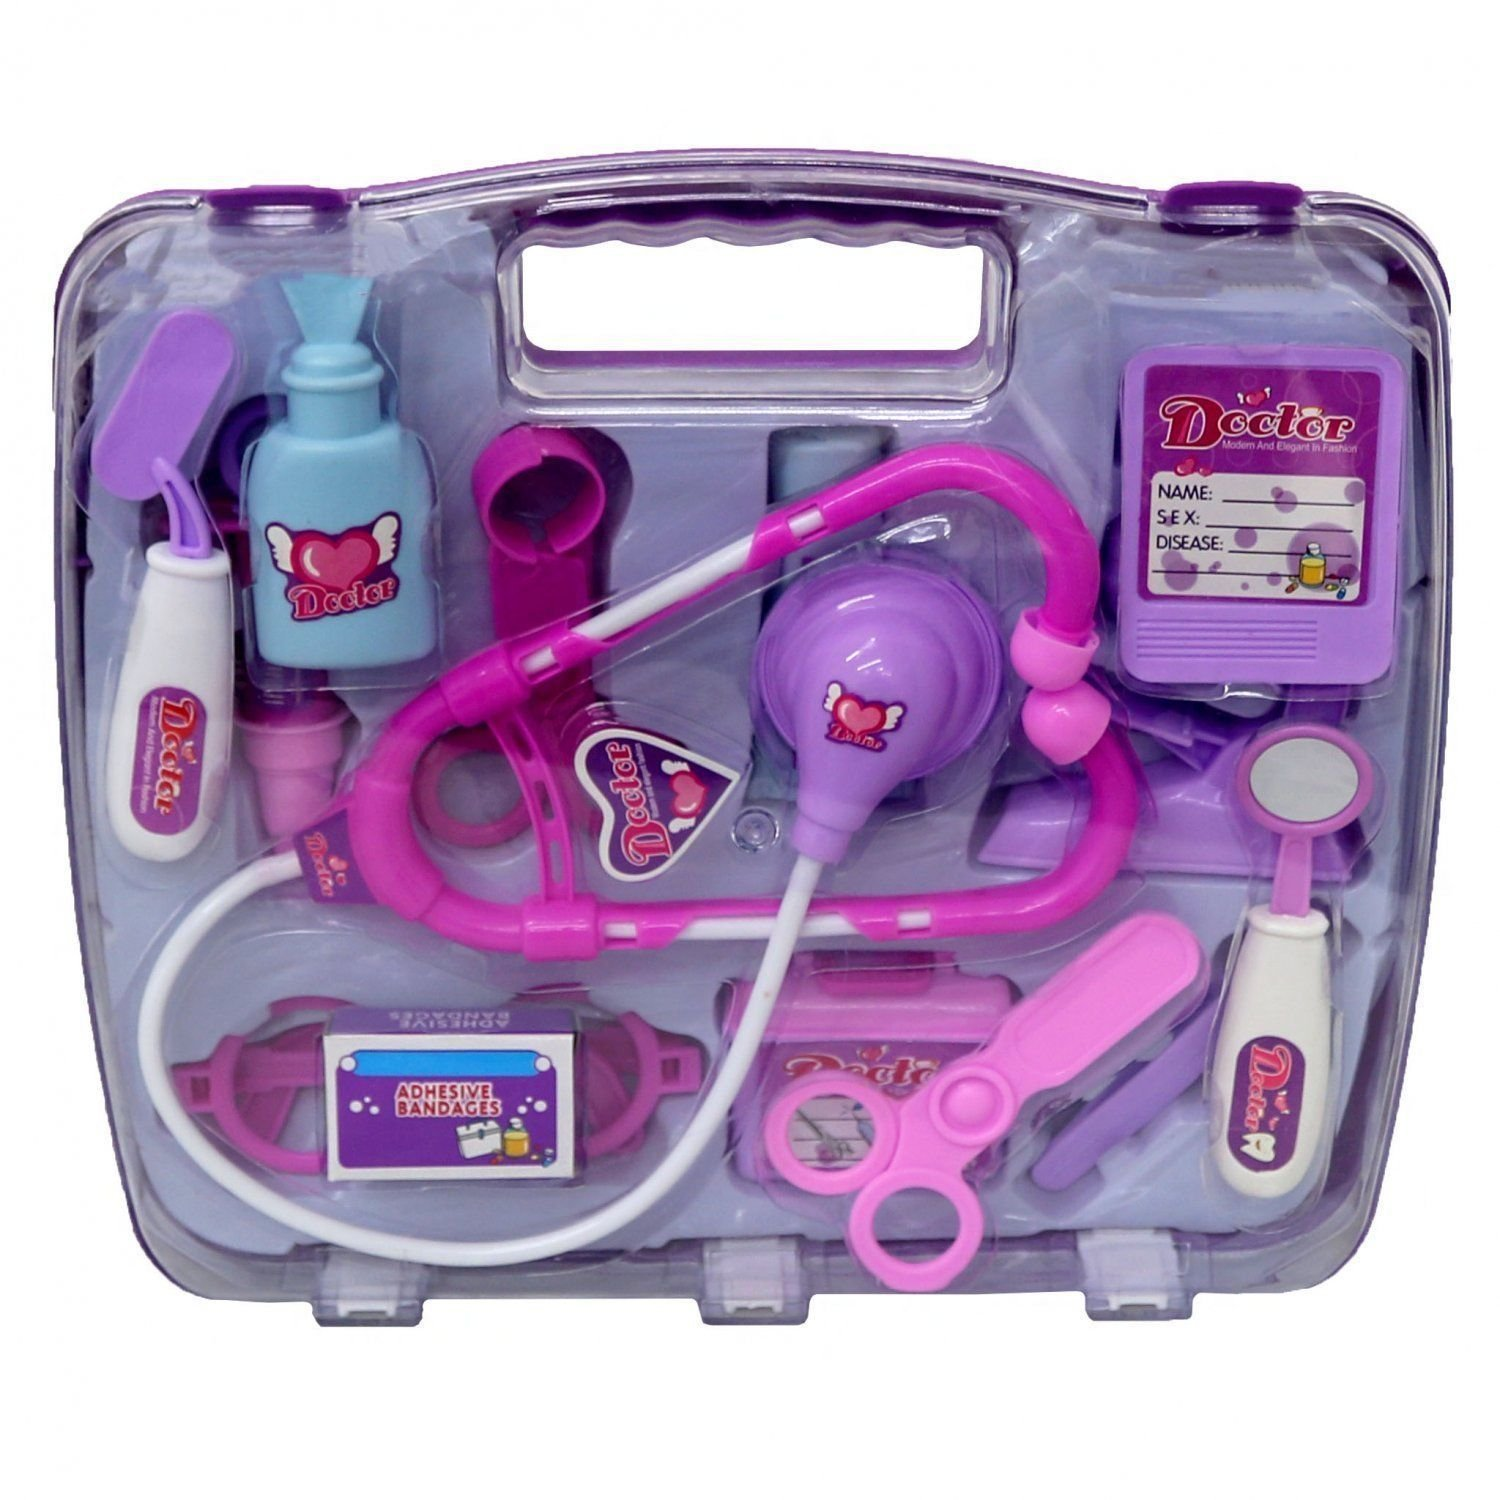 AK Pink Doctor Medical Role Play Toy Set